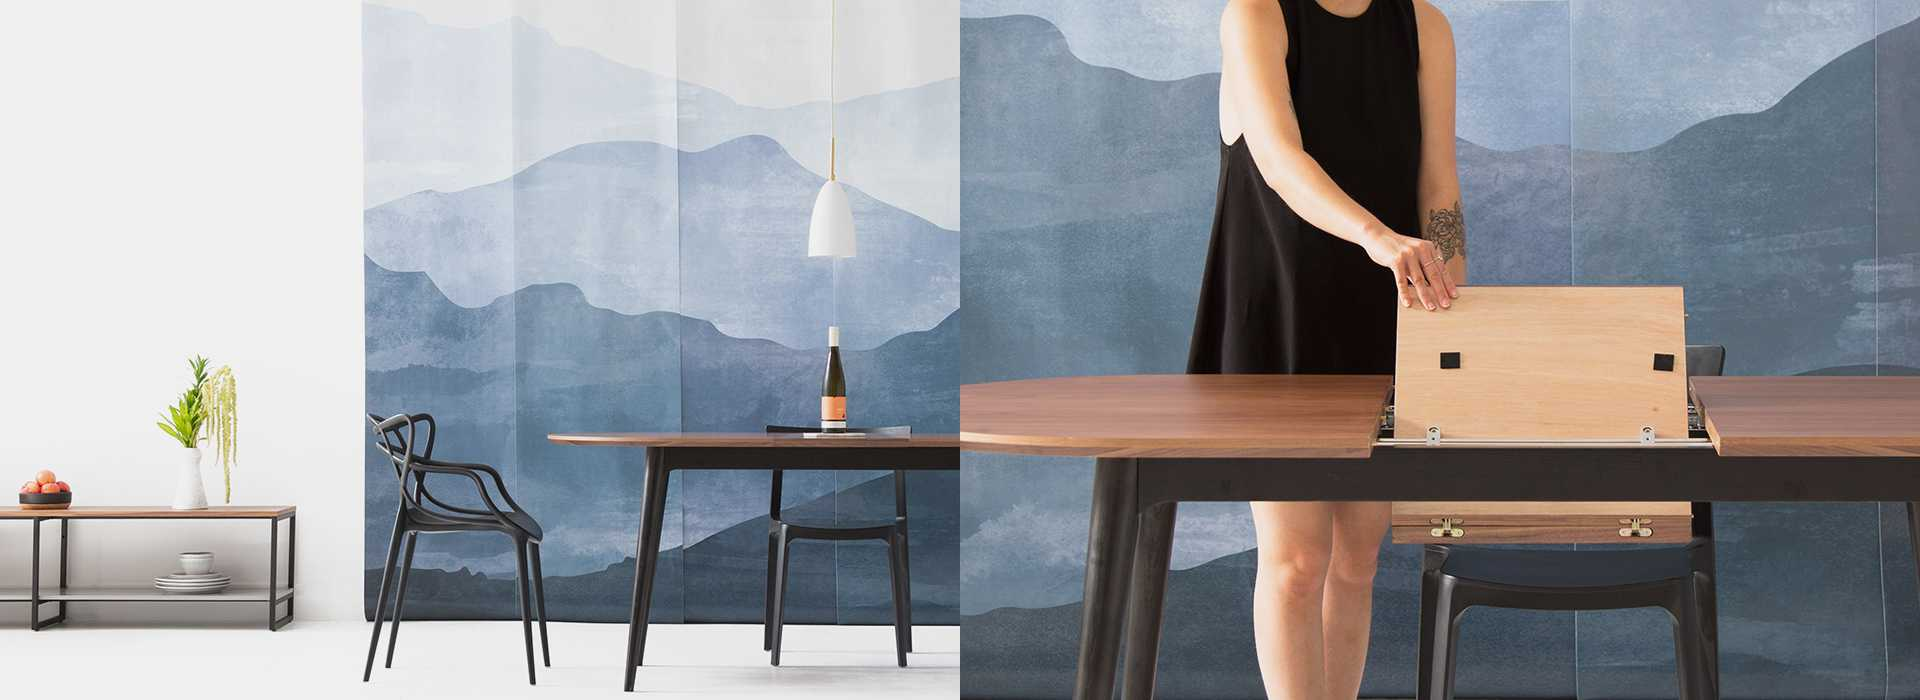 Modern Furniture Home mid century modern furniture for your home and office | rove concepts